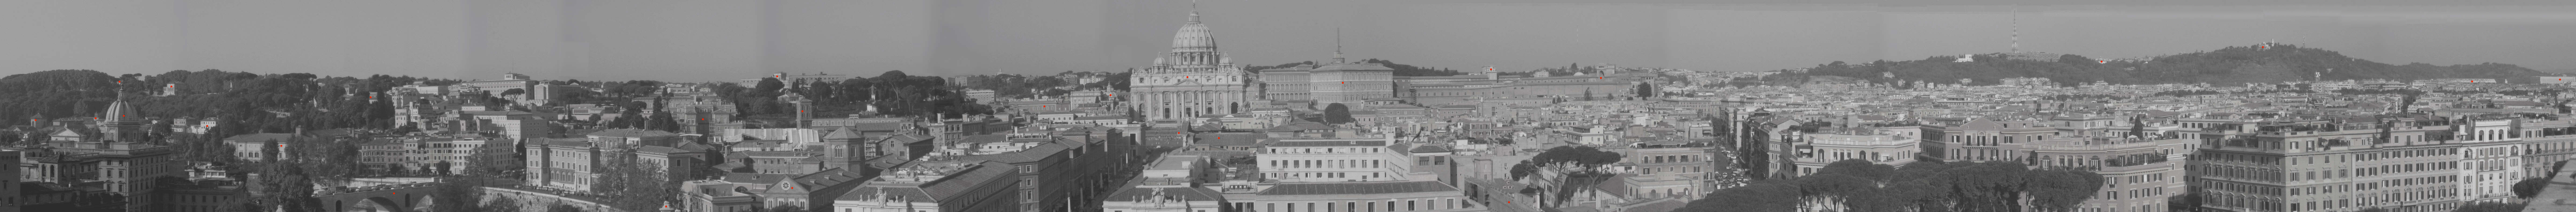 Grand View of Rome from Castel Sant'Angelo - Clickable View